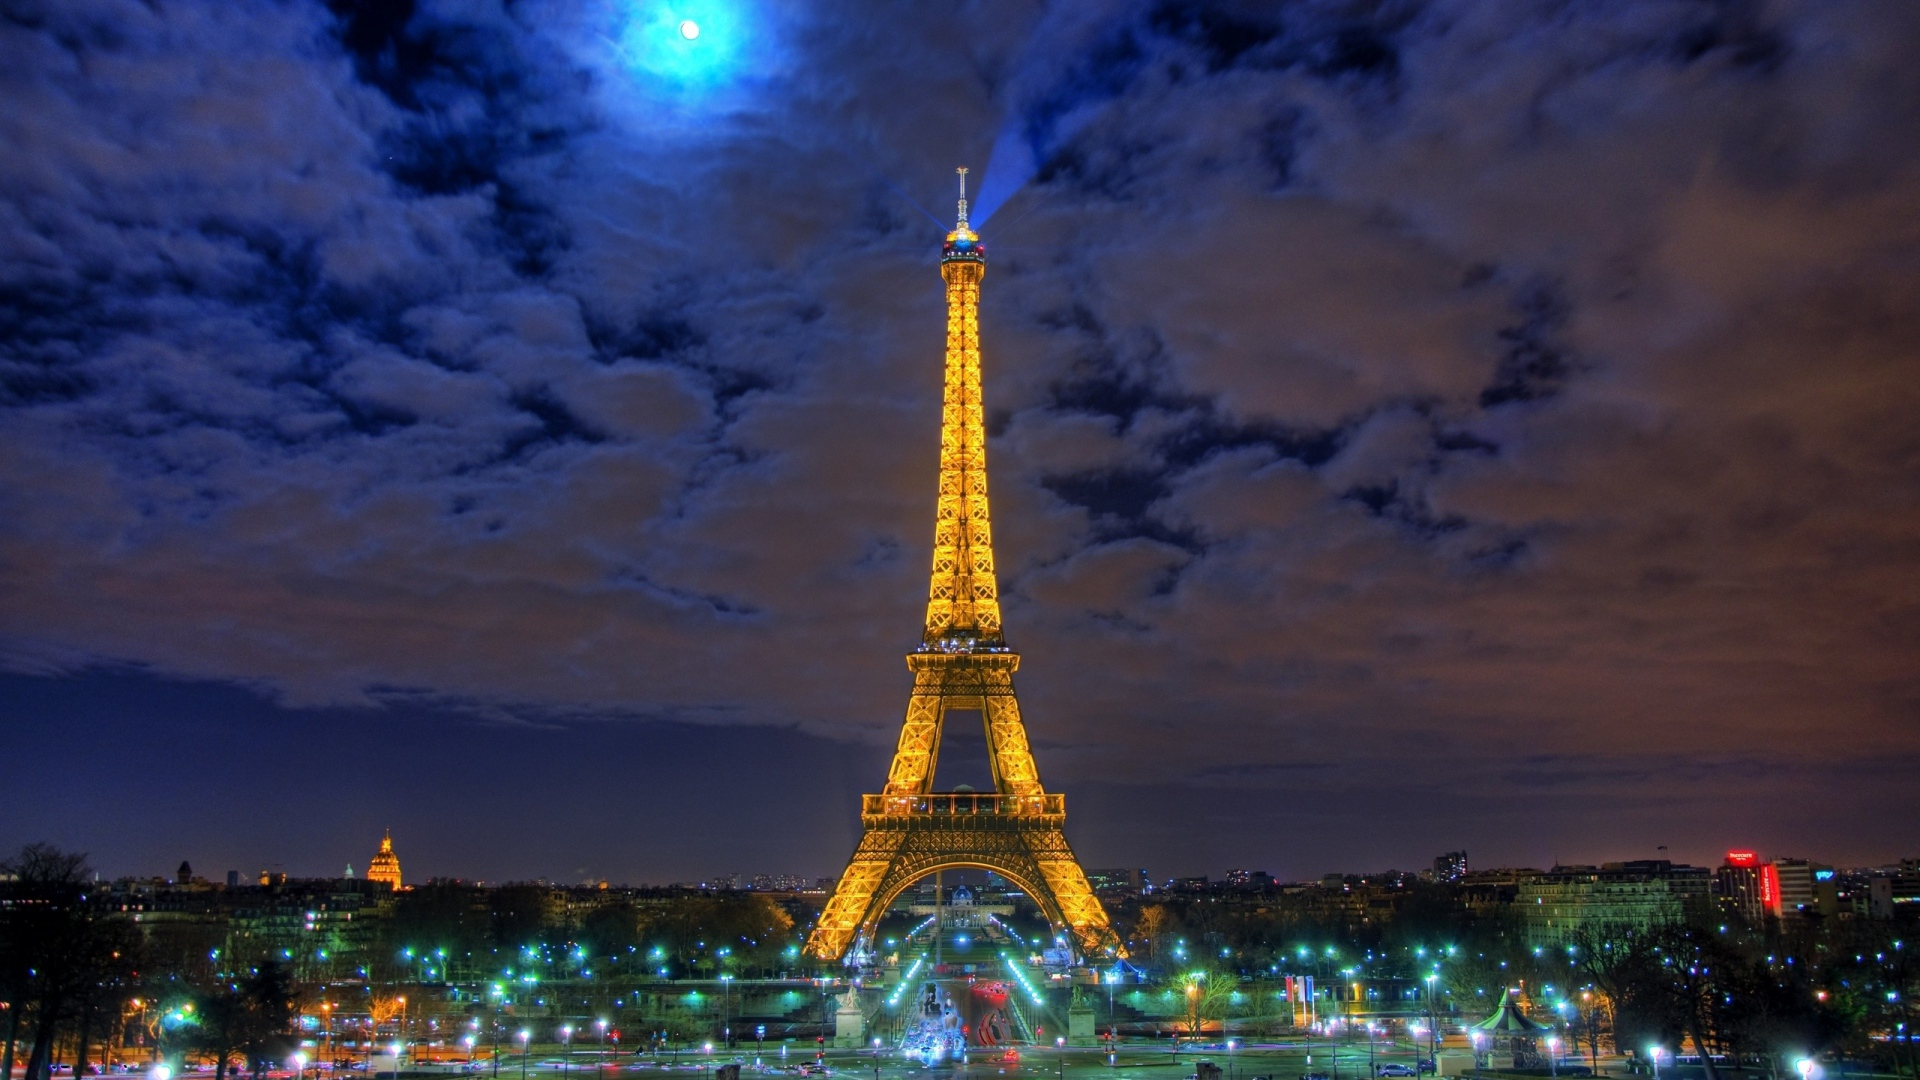 eiffel-tower-paris-france-at-night-hd-wallpaper | wallpaper.wiki